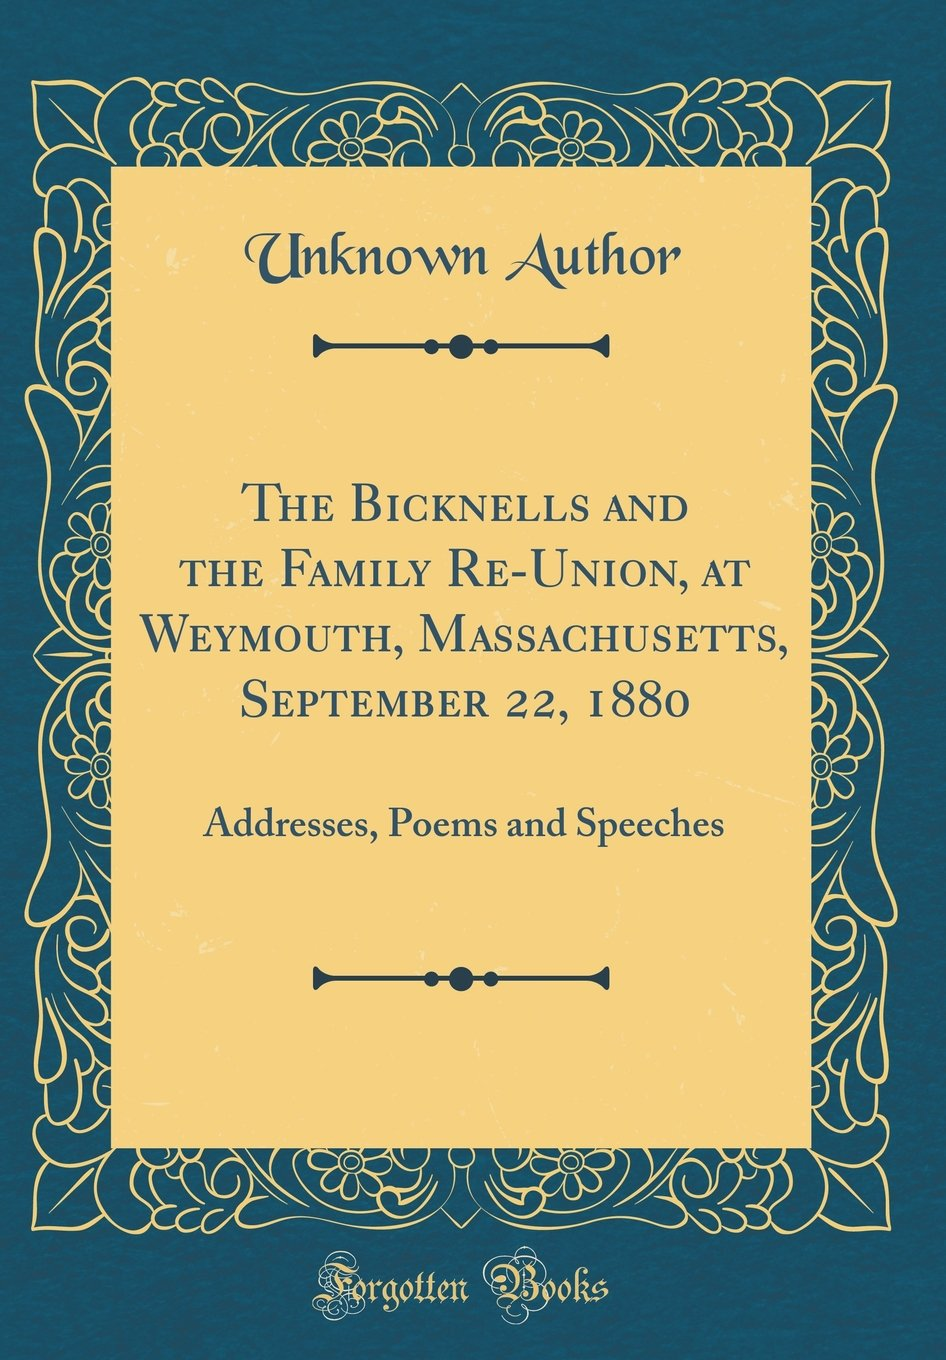 The Bicknells and the Family Re-Union, at Weymouth, Massachusetts, September 22, 1880: Addresses, Poems and Speeches (Classic Reprint) PDF